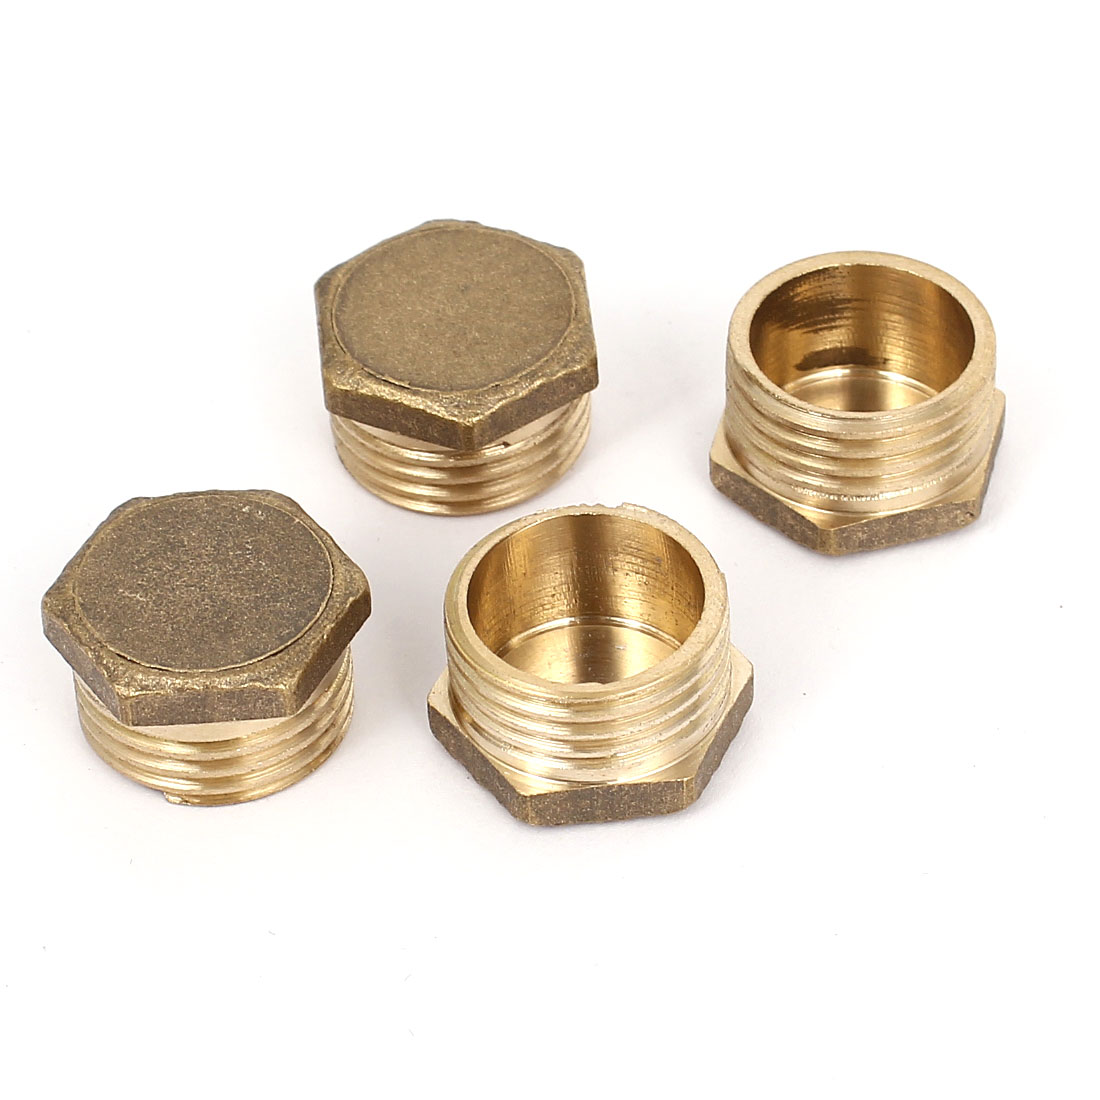 1/2 BSP Male Thread Fuel Water Air Brass Pipe Hex Head Fitting 4 Pcs